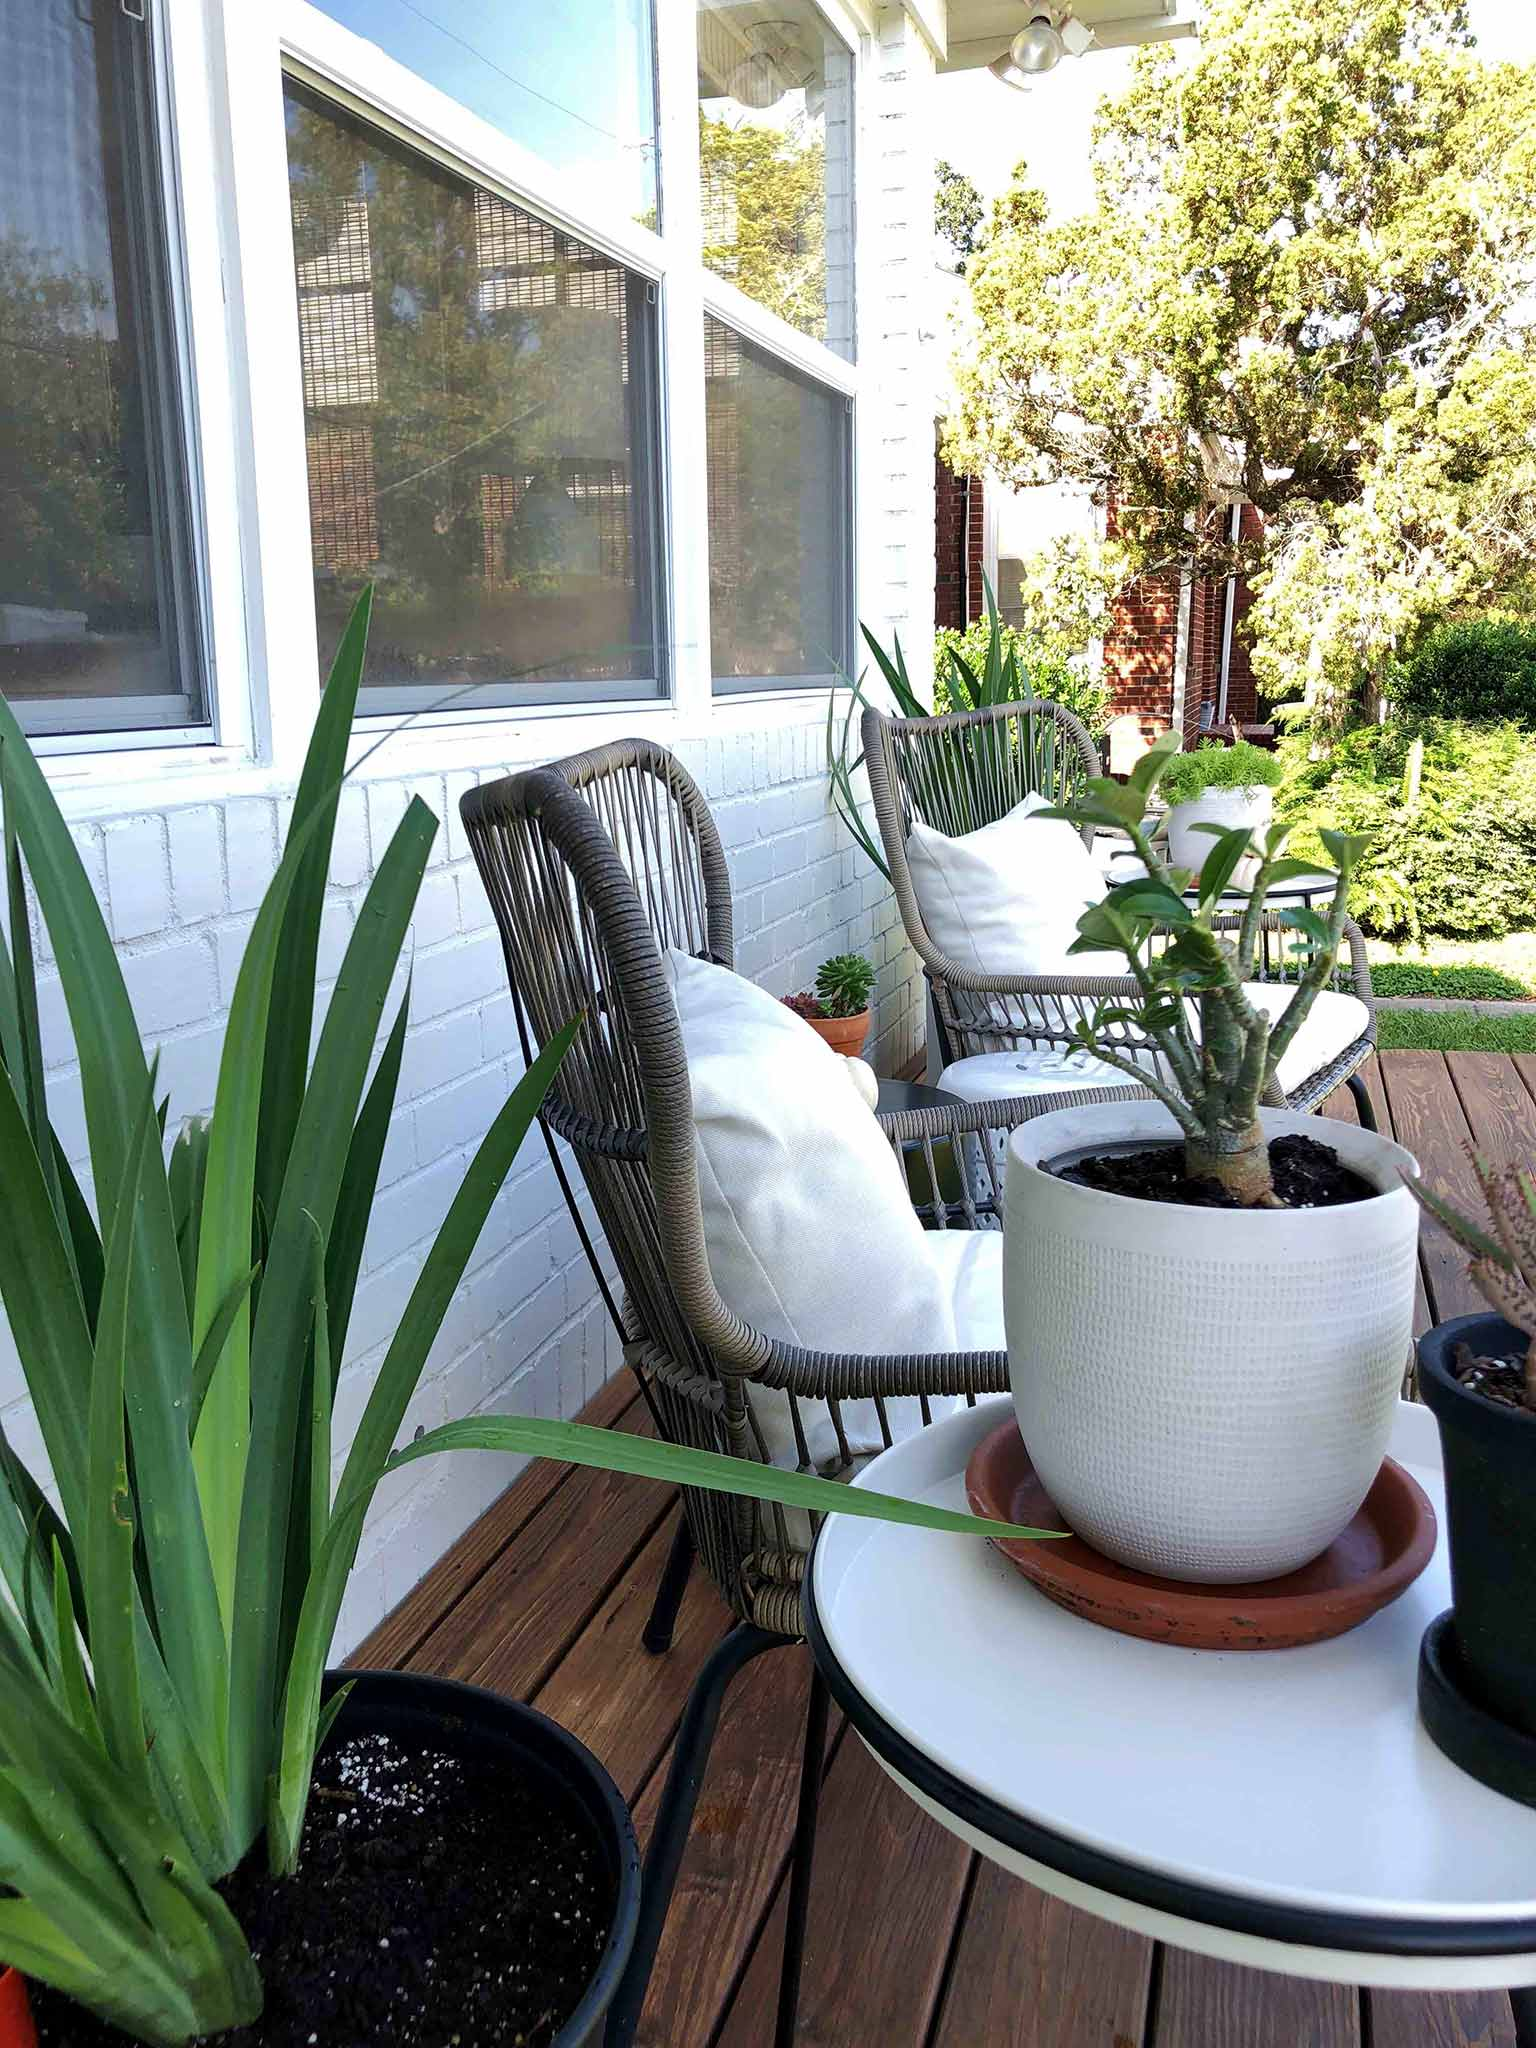 Iris planters - Front porch fall makeover reveal - That Homebird Life Blog